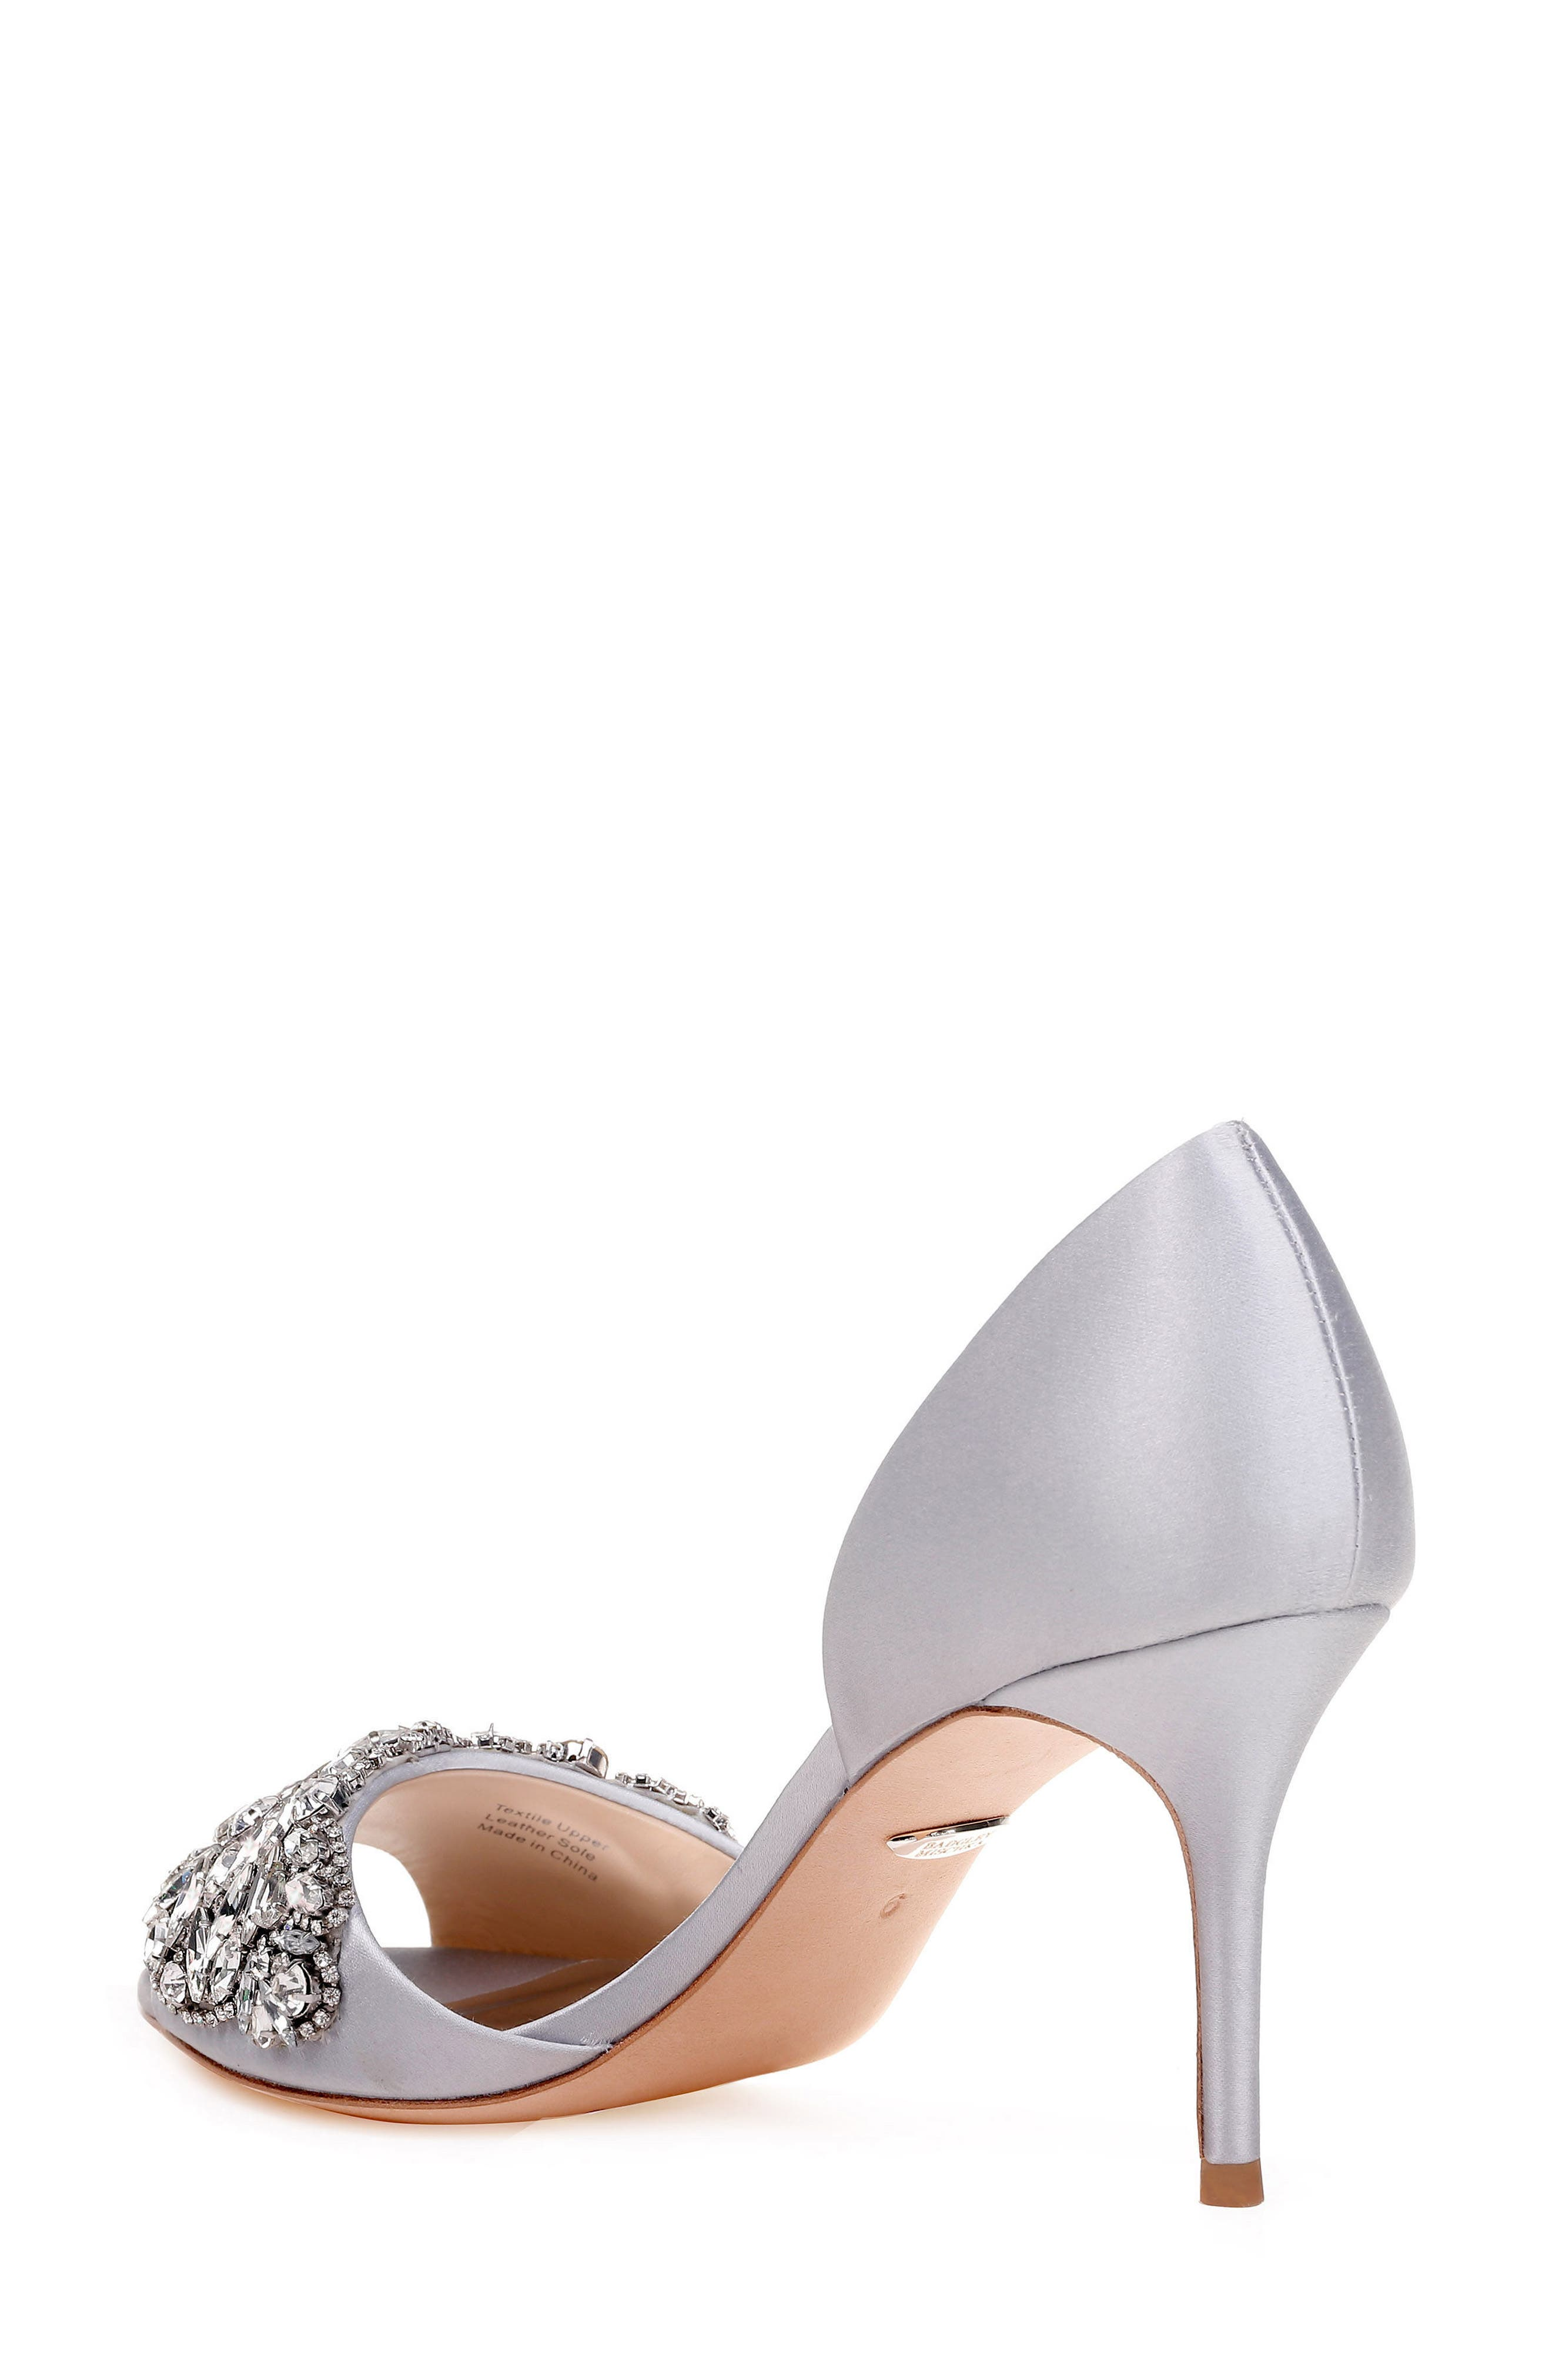 Hansen Crystal Embellished Sandal,                             Alternate thumbnail 2, color,                             SILVER SATIN